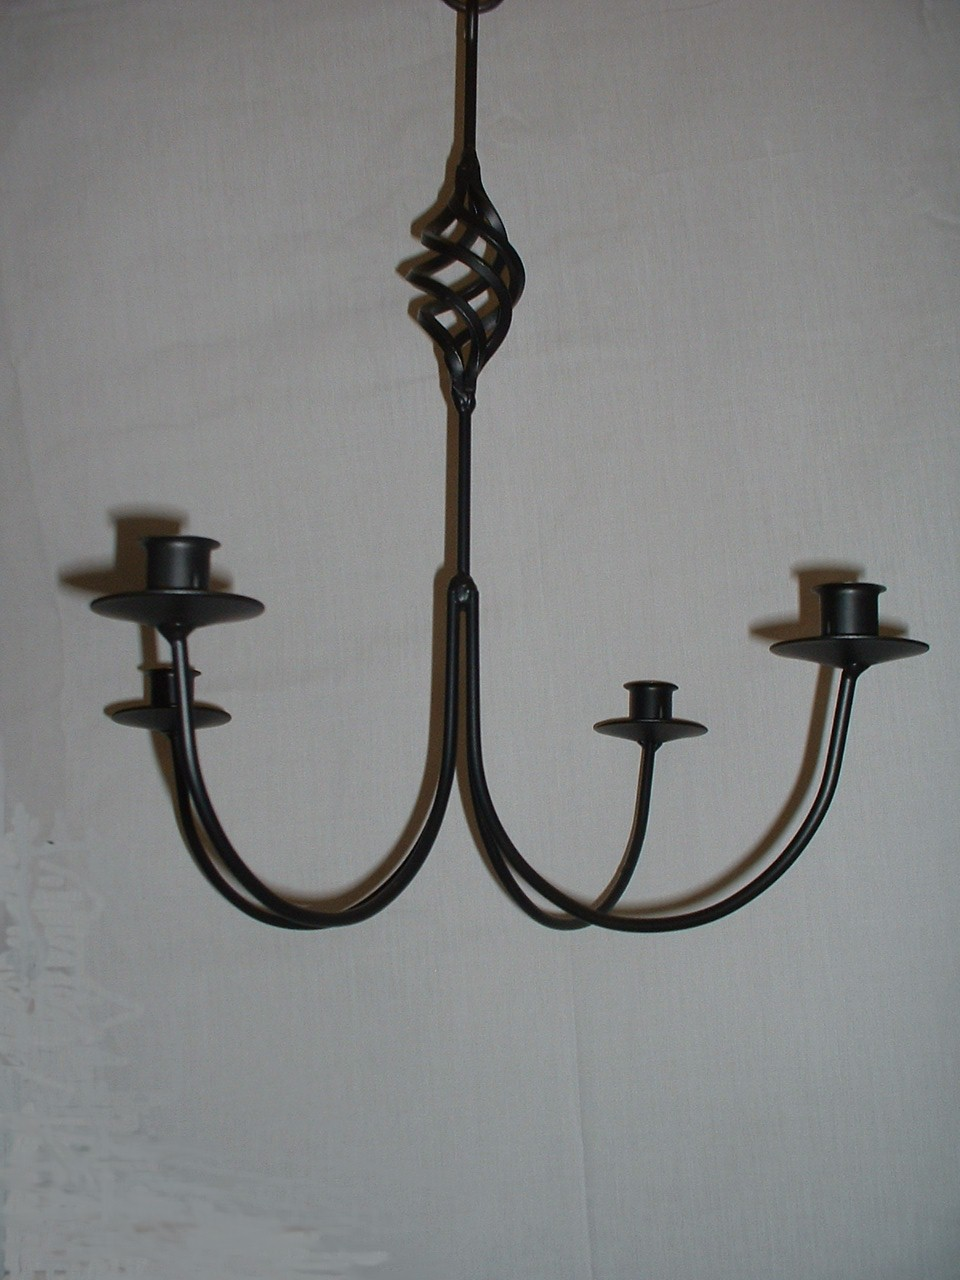 Black Wrought Iron 6 Arm Votive Candle Chandelier USA items in